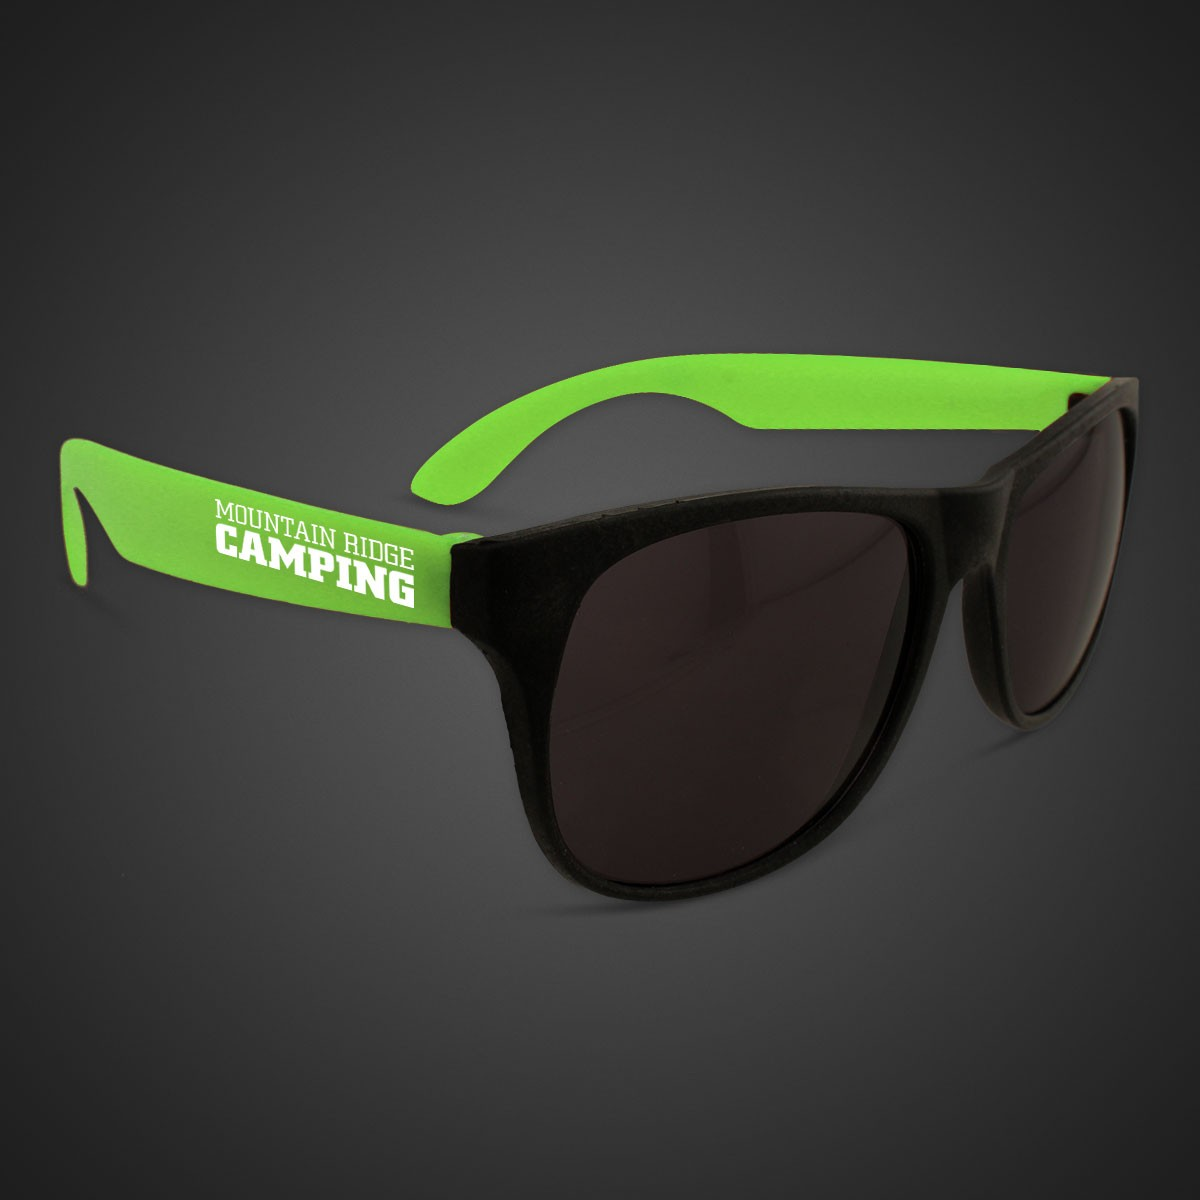 Green Neon Sunglasses